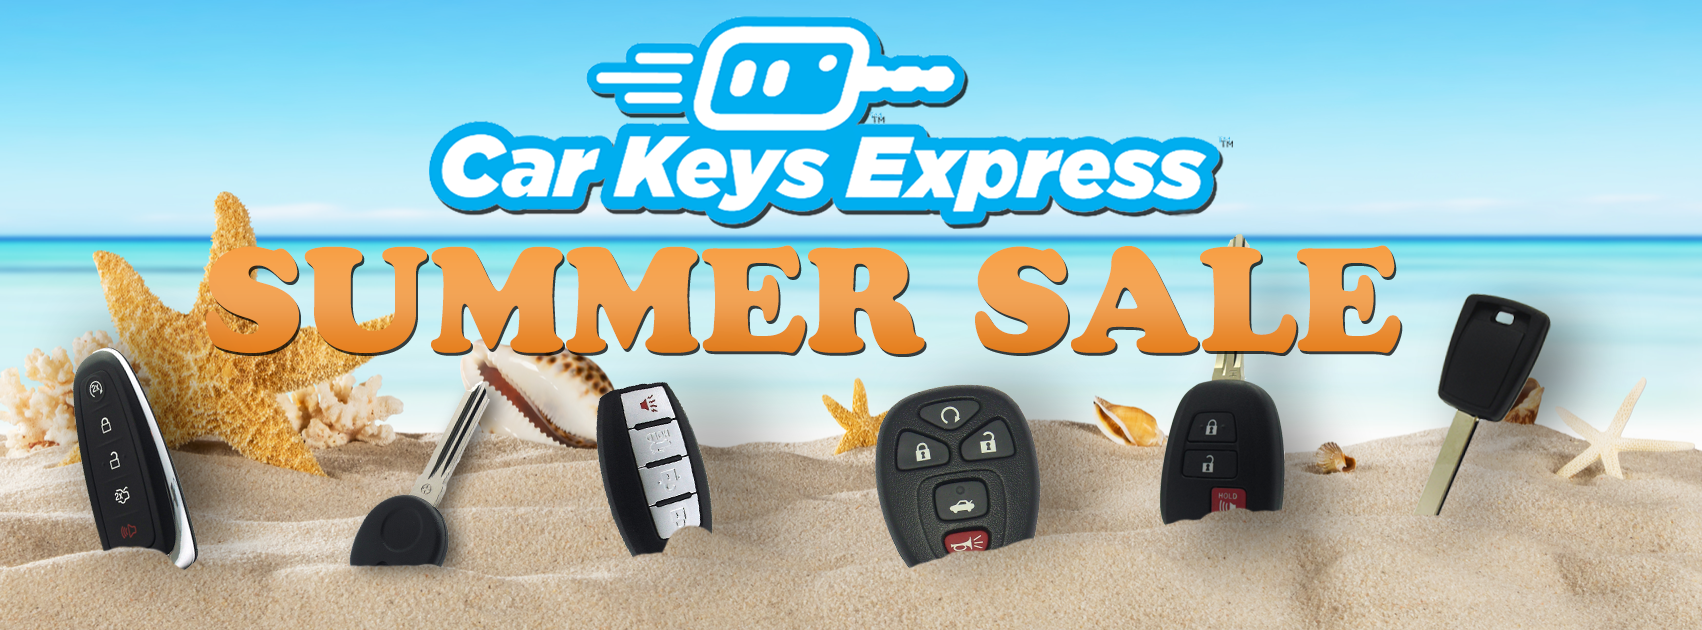 Summer is already here at Car Keys Express! Save up to 25% off select items during the summer sales event!